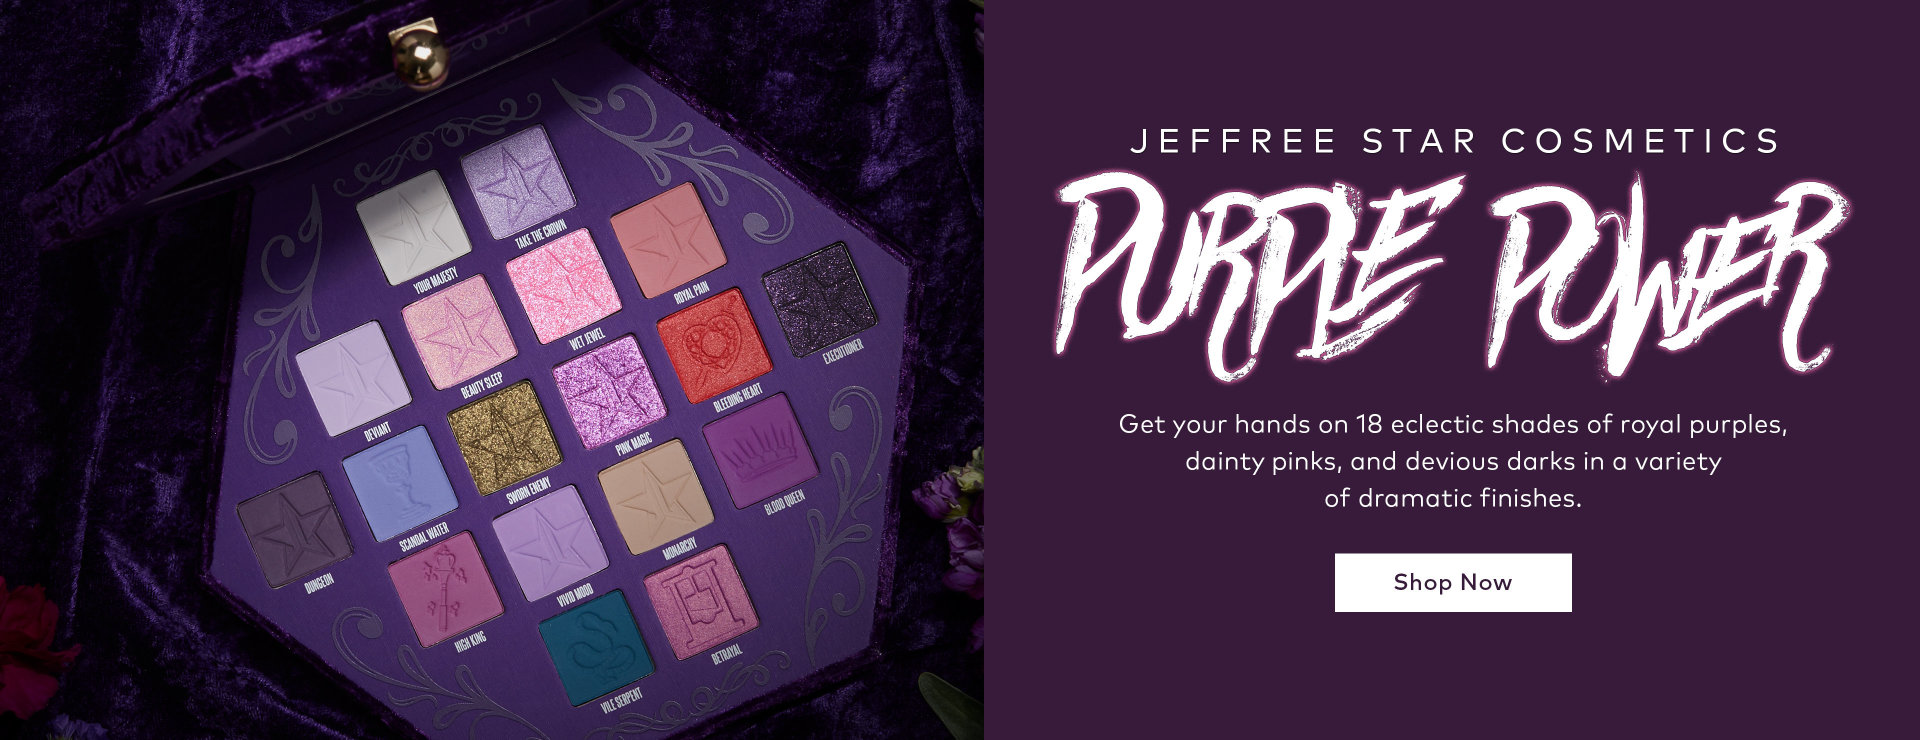 Shop Jeffree Star Cosmetics' Blood Lust Palette on Beautylish.com